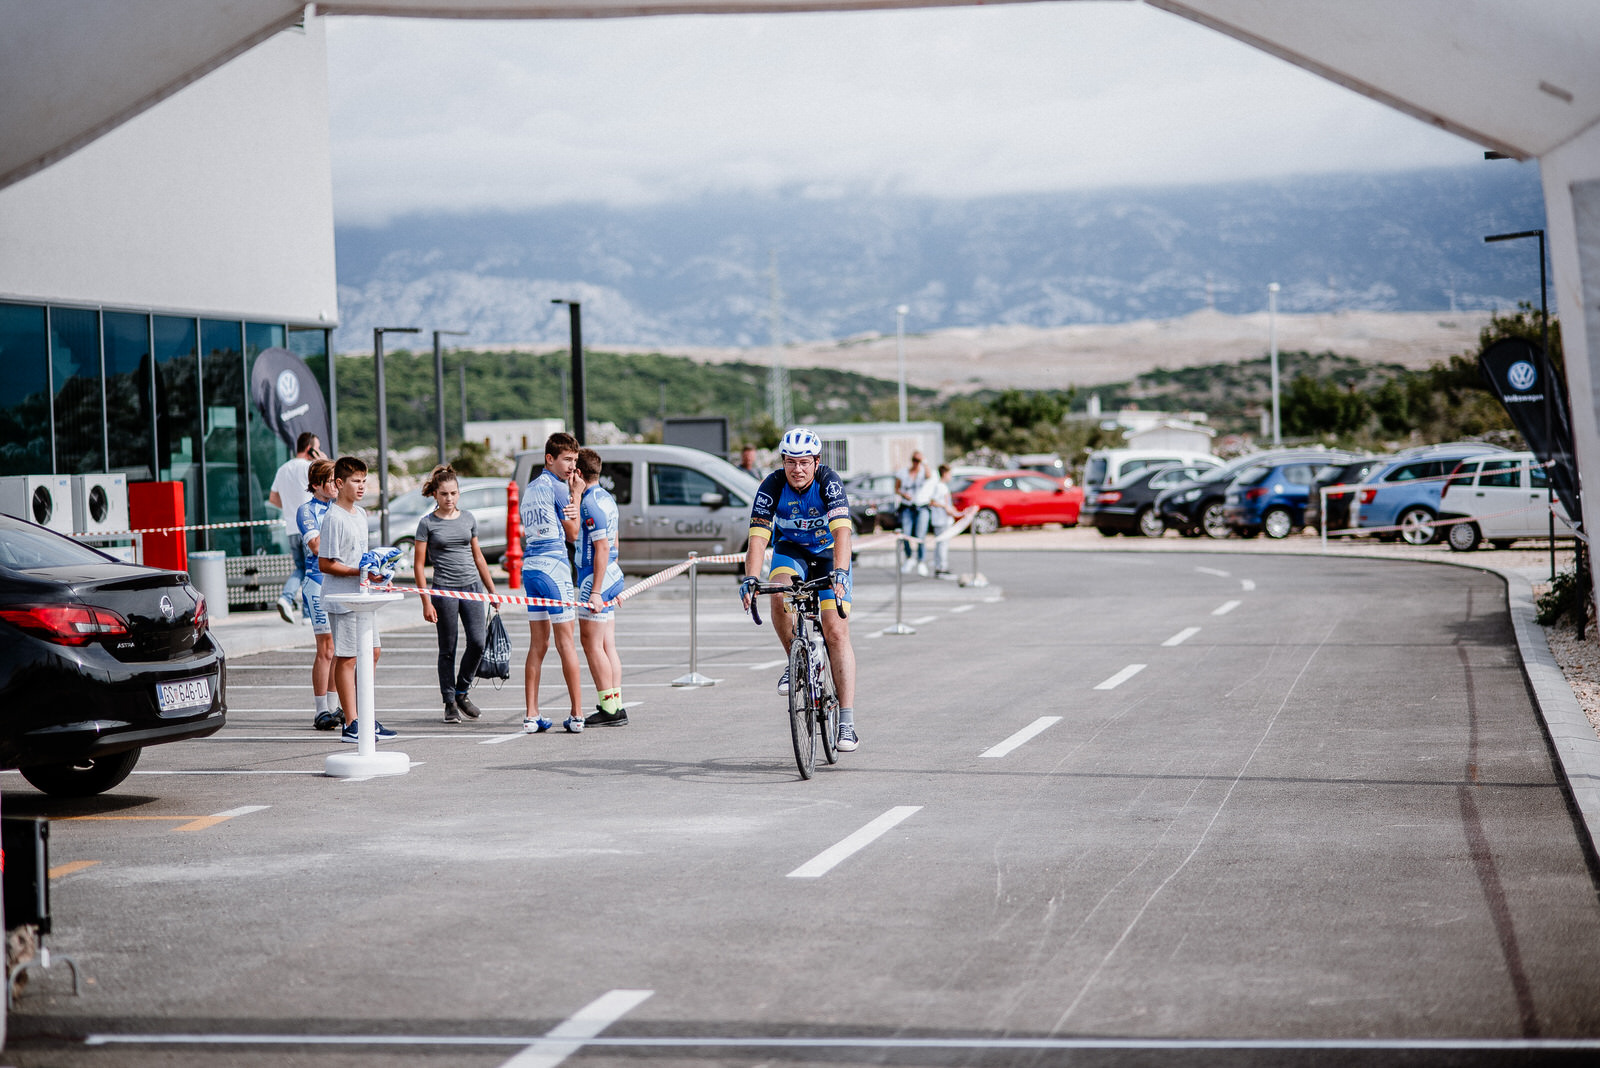 likaclub_Granfondo-Pag-–-Cycling-on-the-Moon_2019-53-1